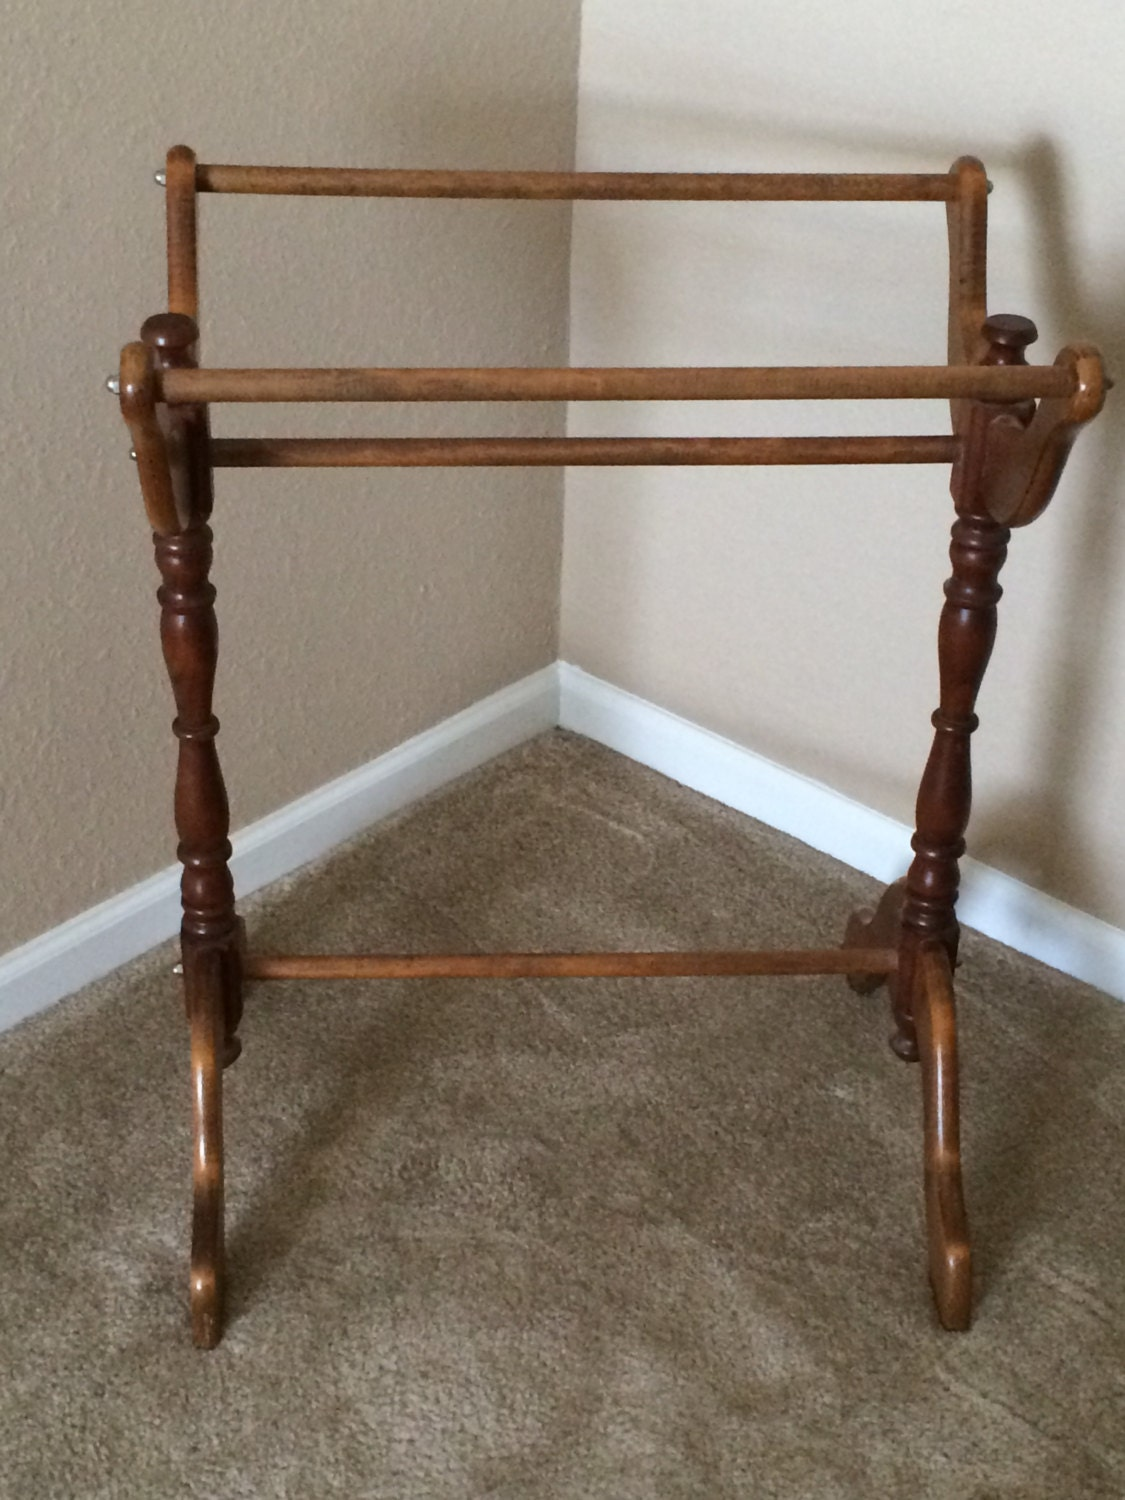 Free Us Shipping Vintage Wooden Quilt Rack By